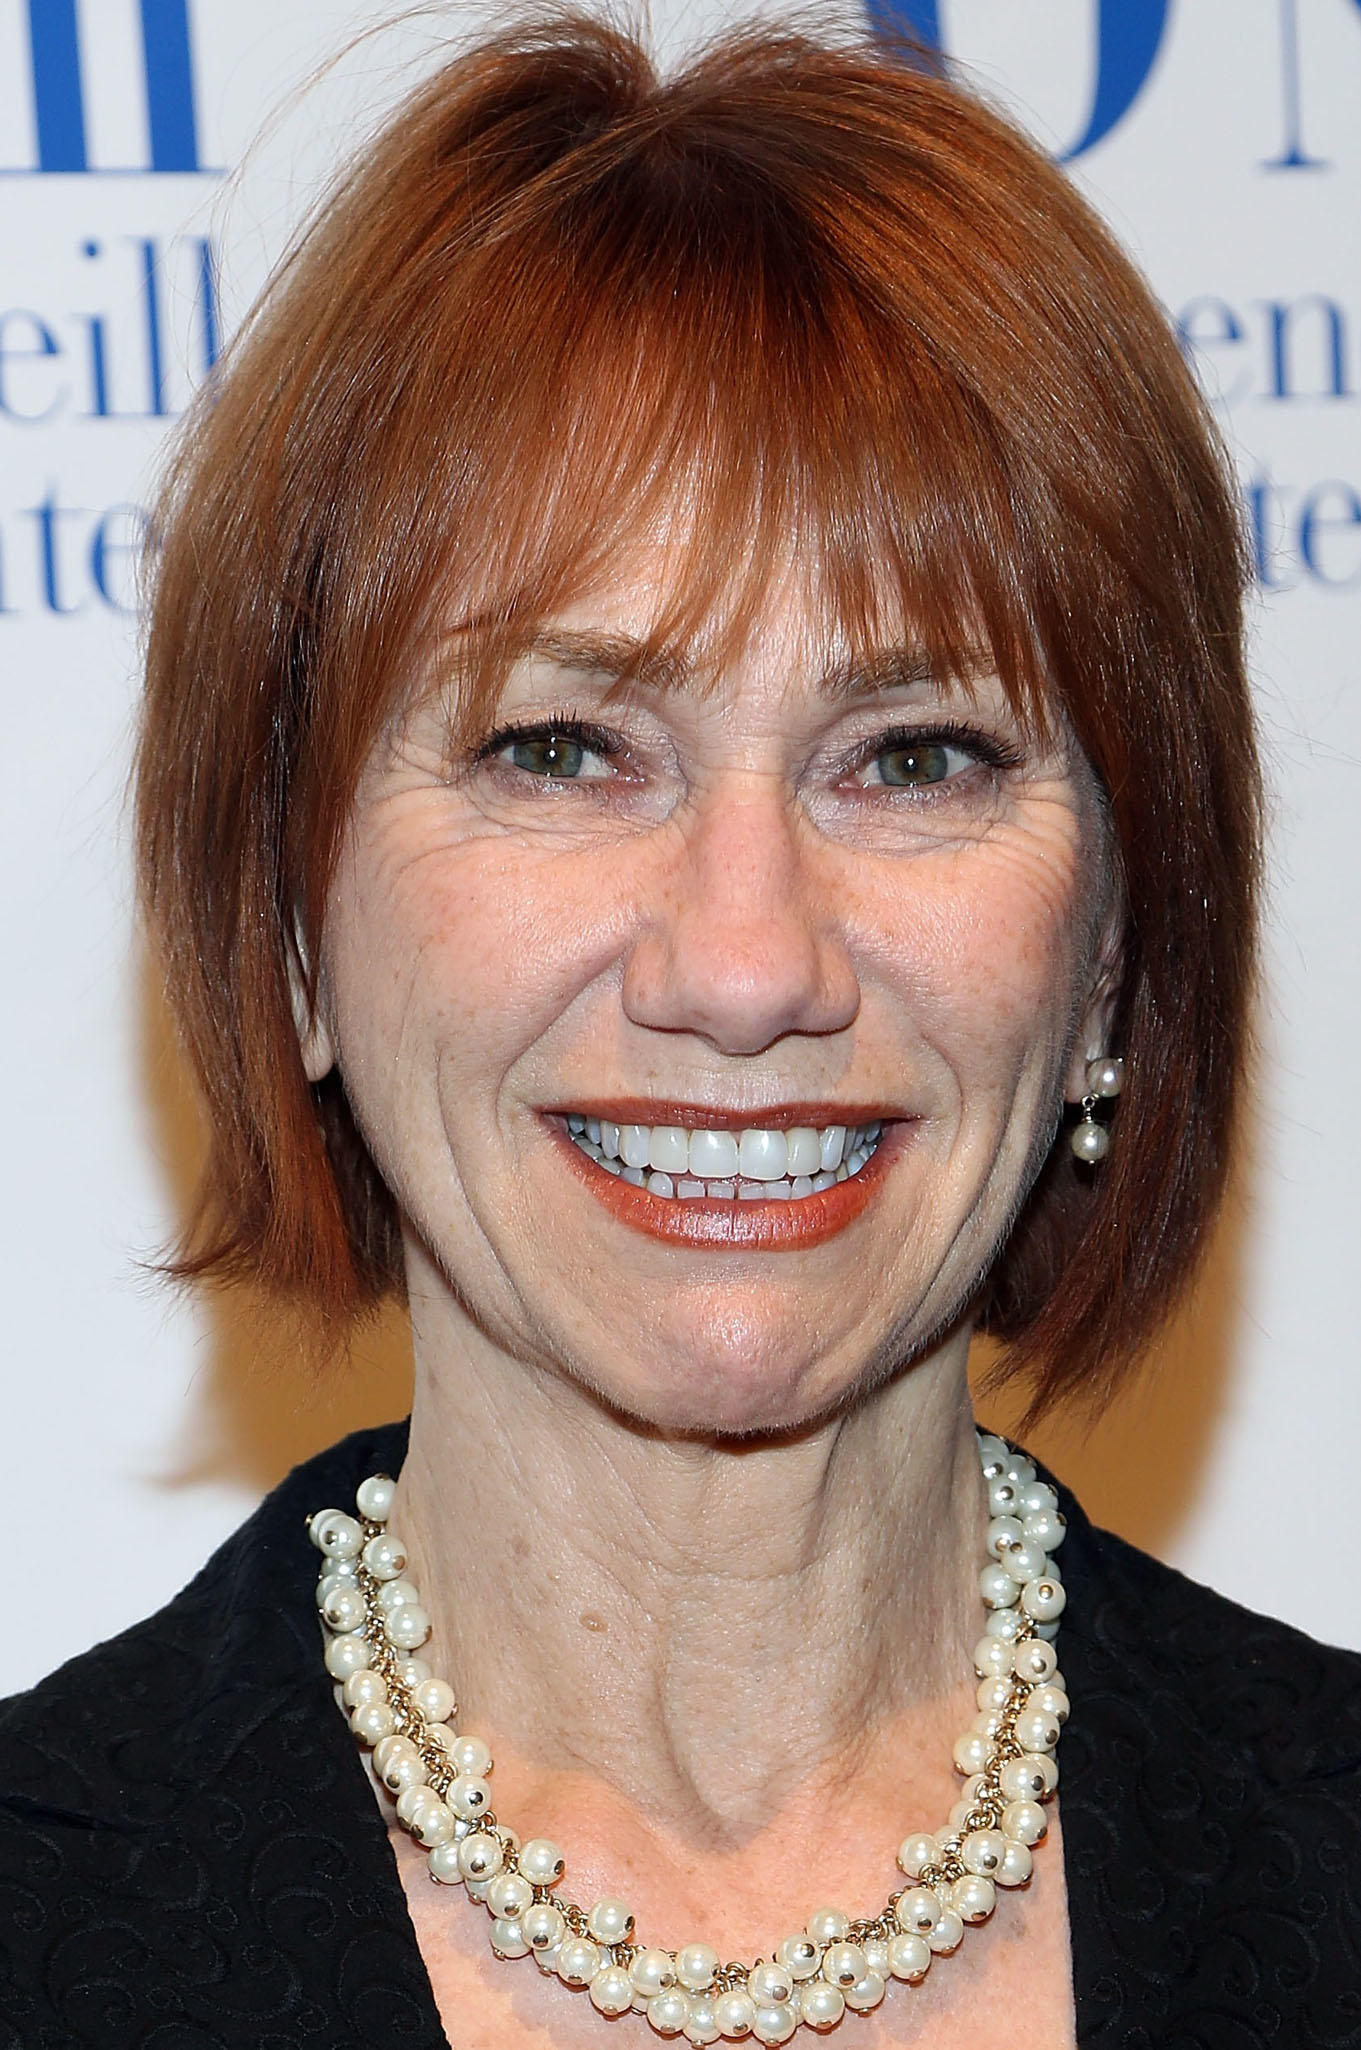 Kathy Baker at the 14th annual Monte Cristo Award at The Edison Ballroom in New York City.